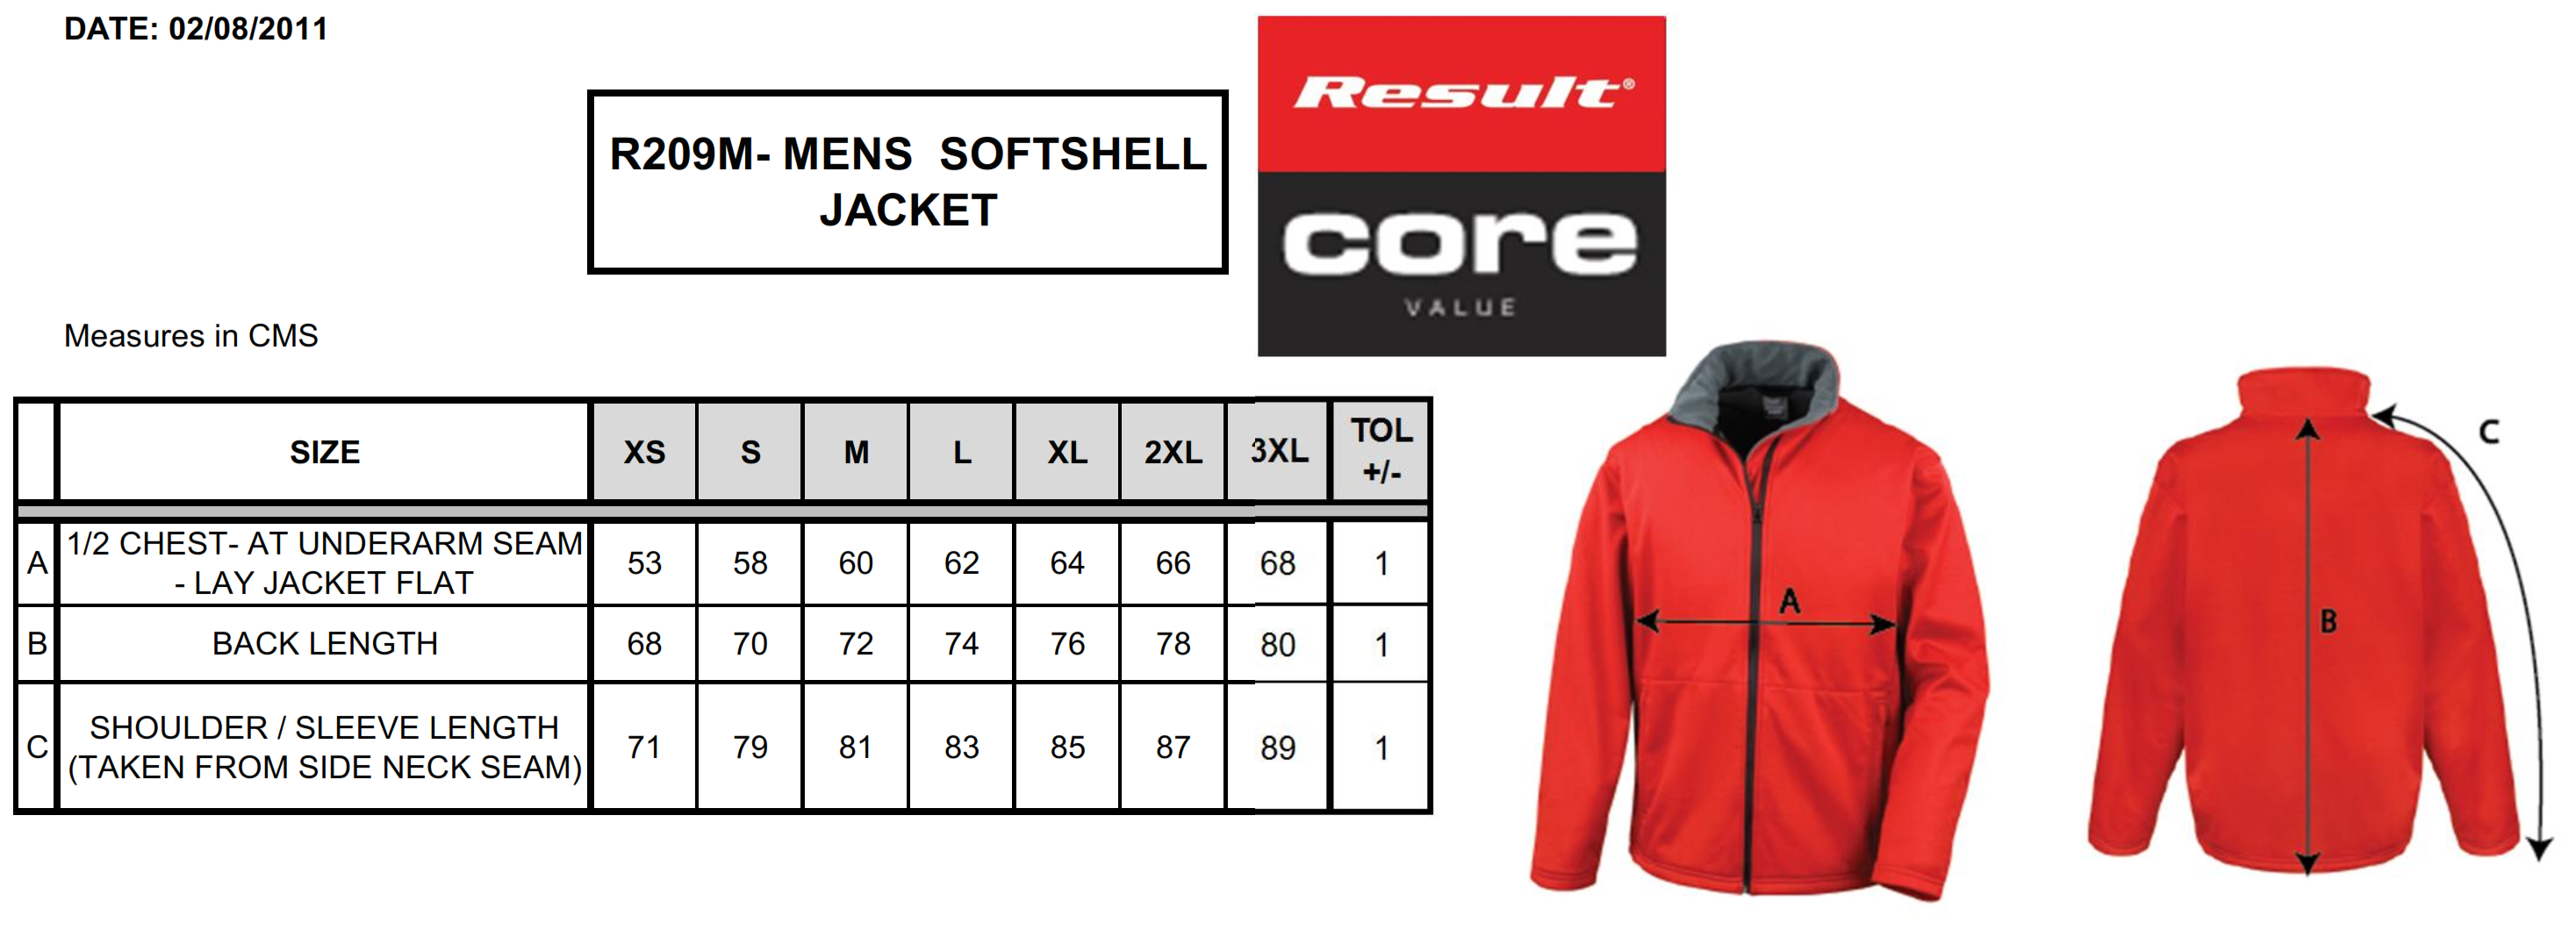 Result: Core Softshell Jacket R209M